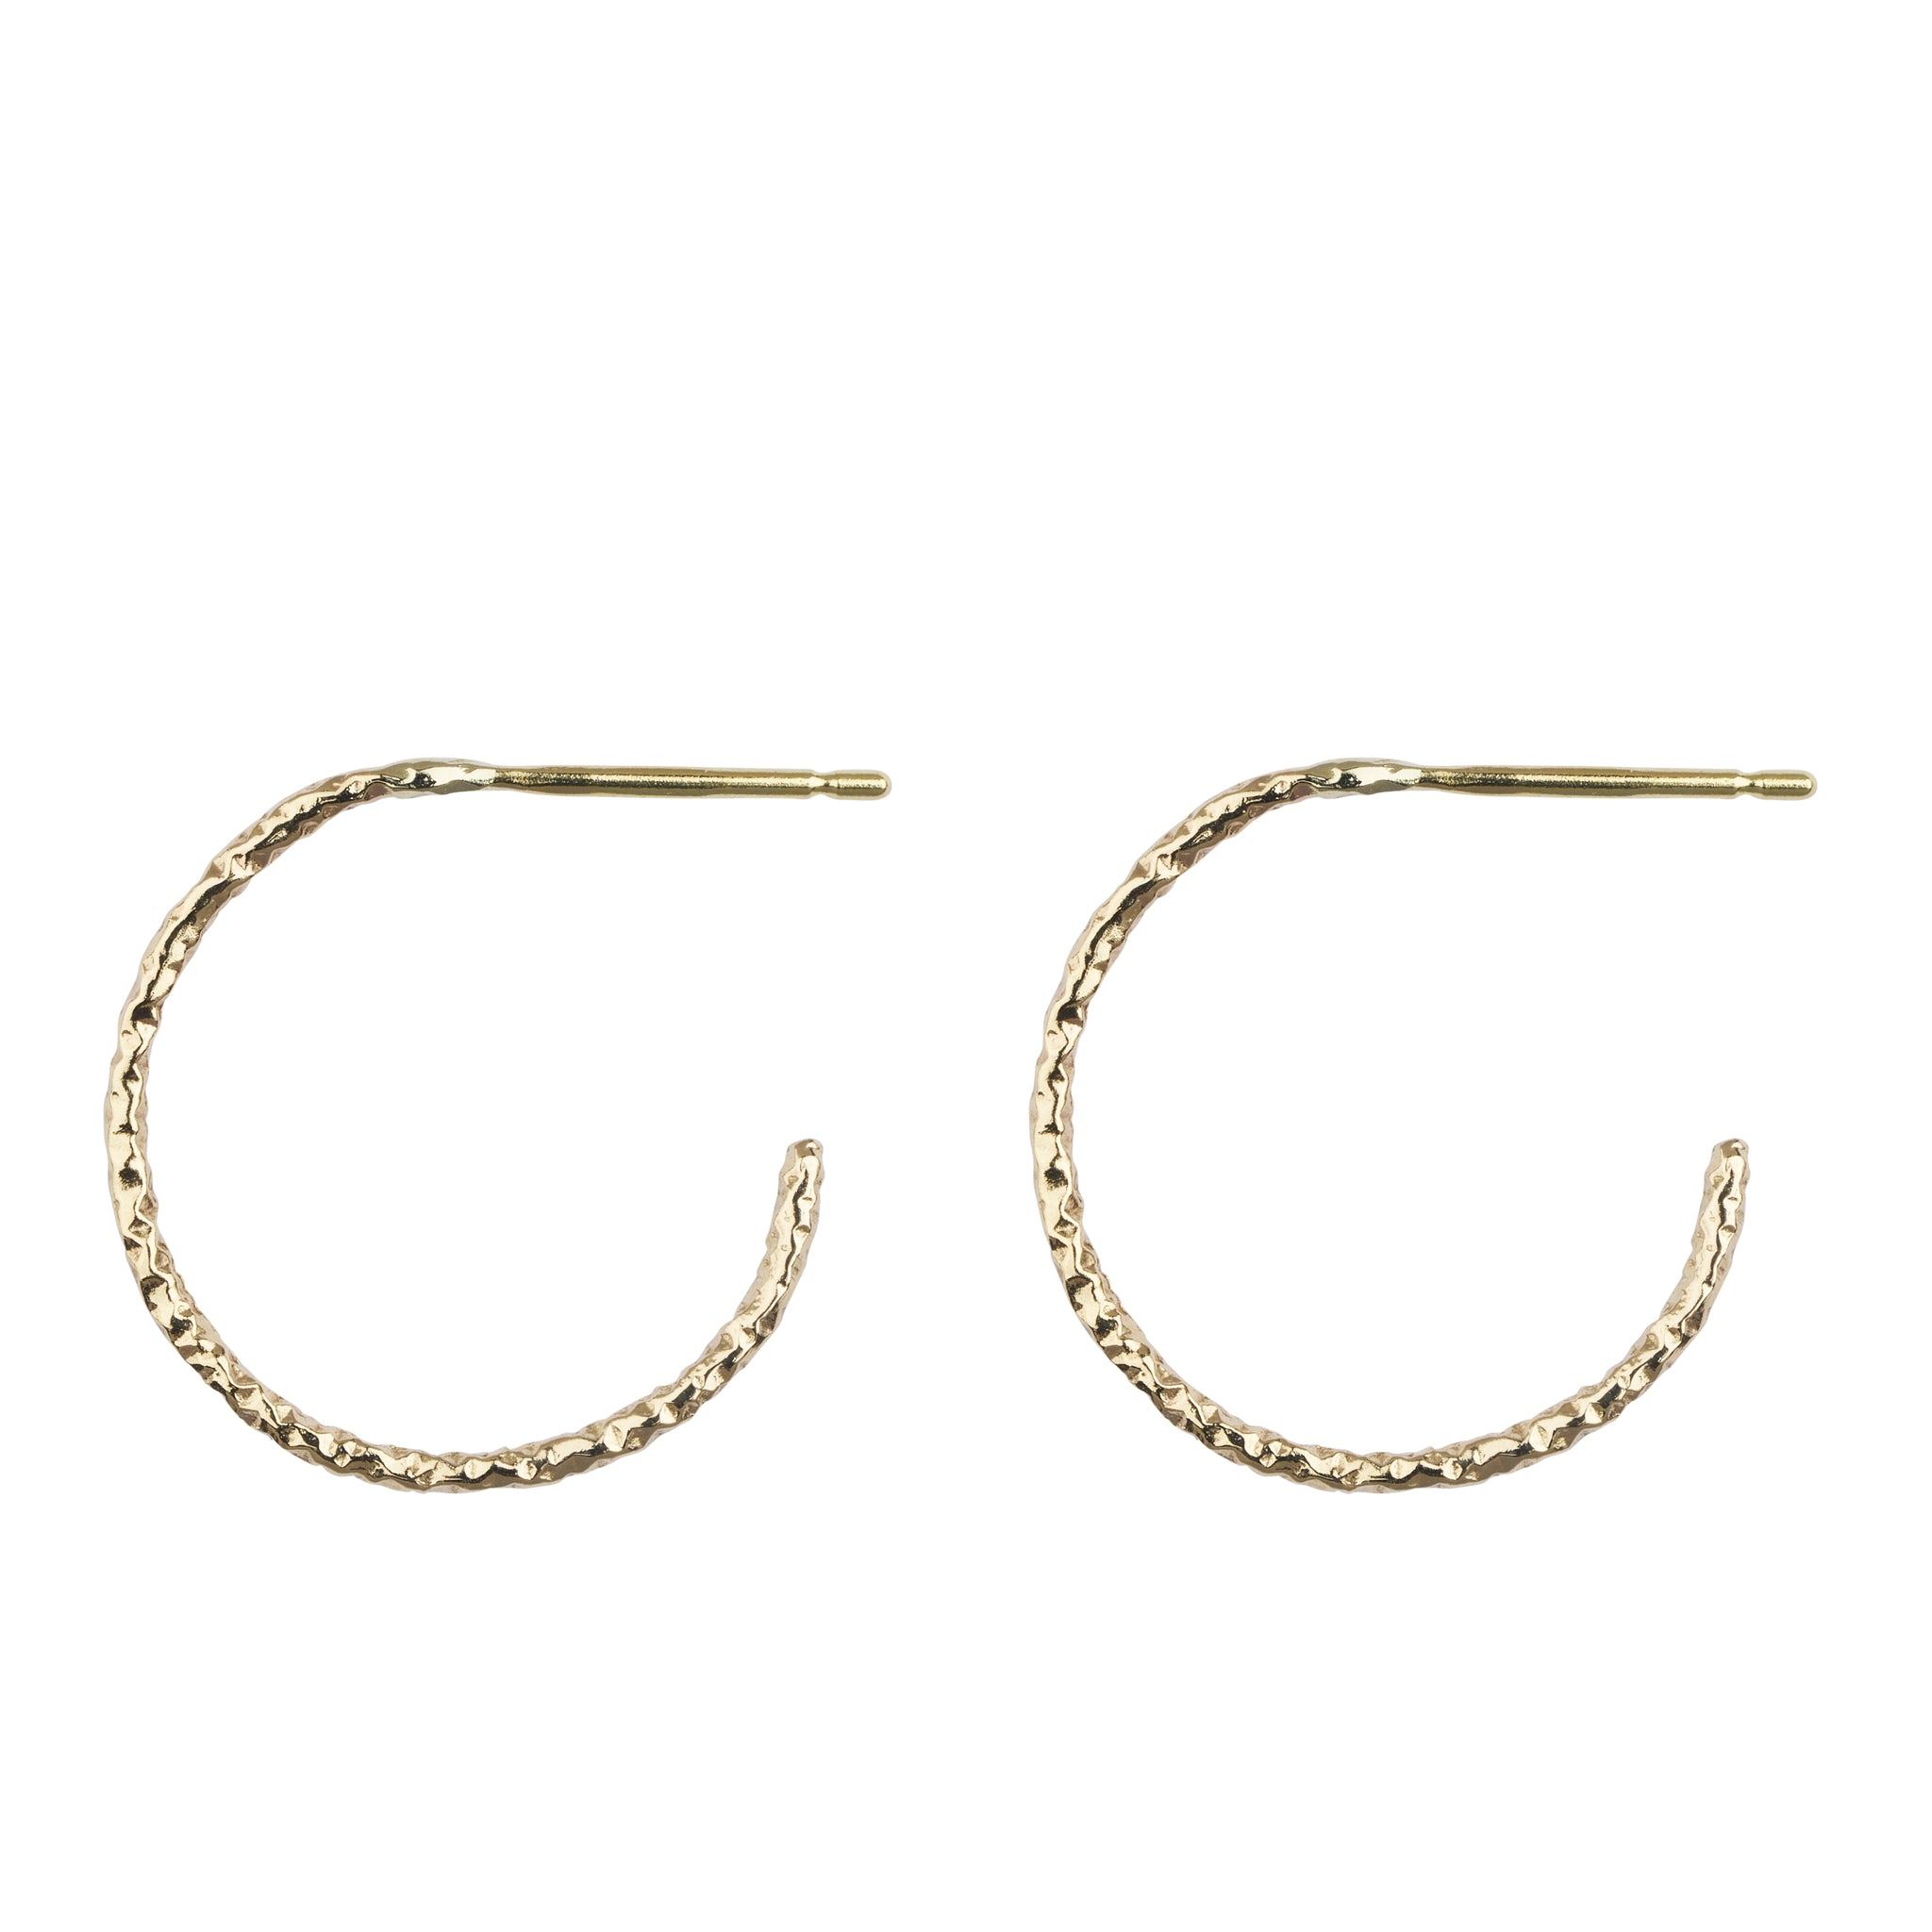 ellis mhairi Cameron hoop earrings